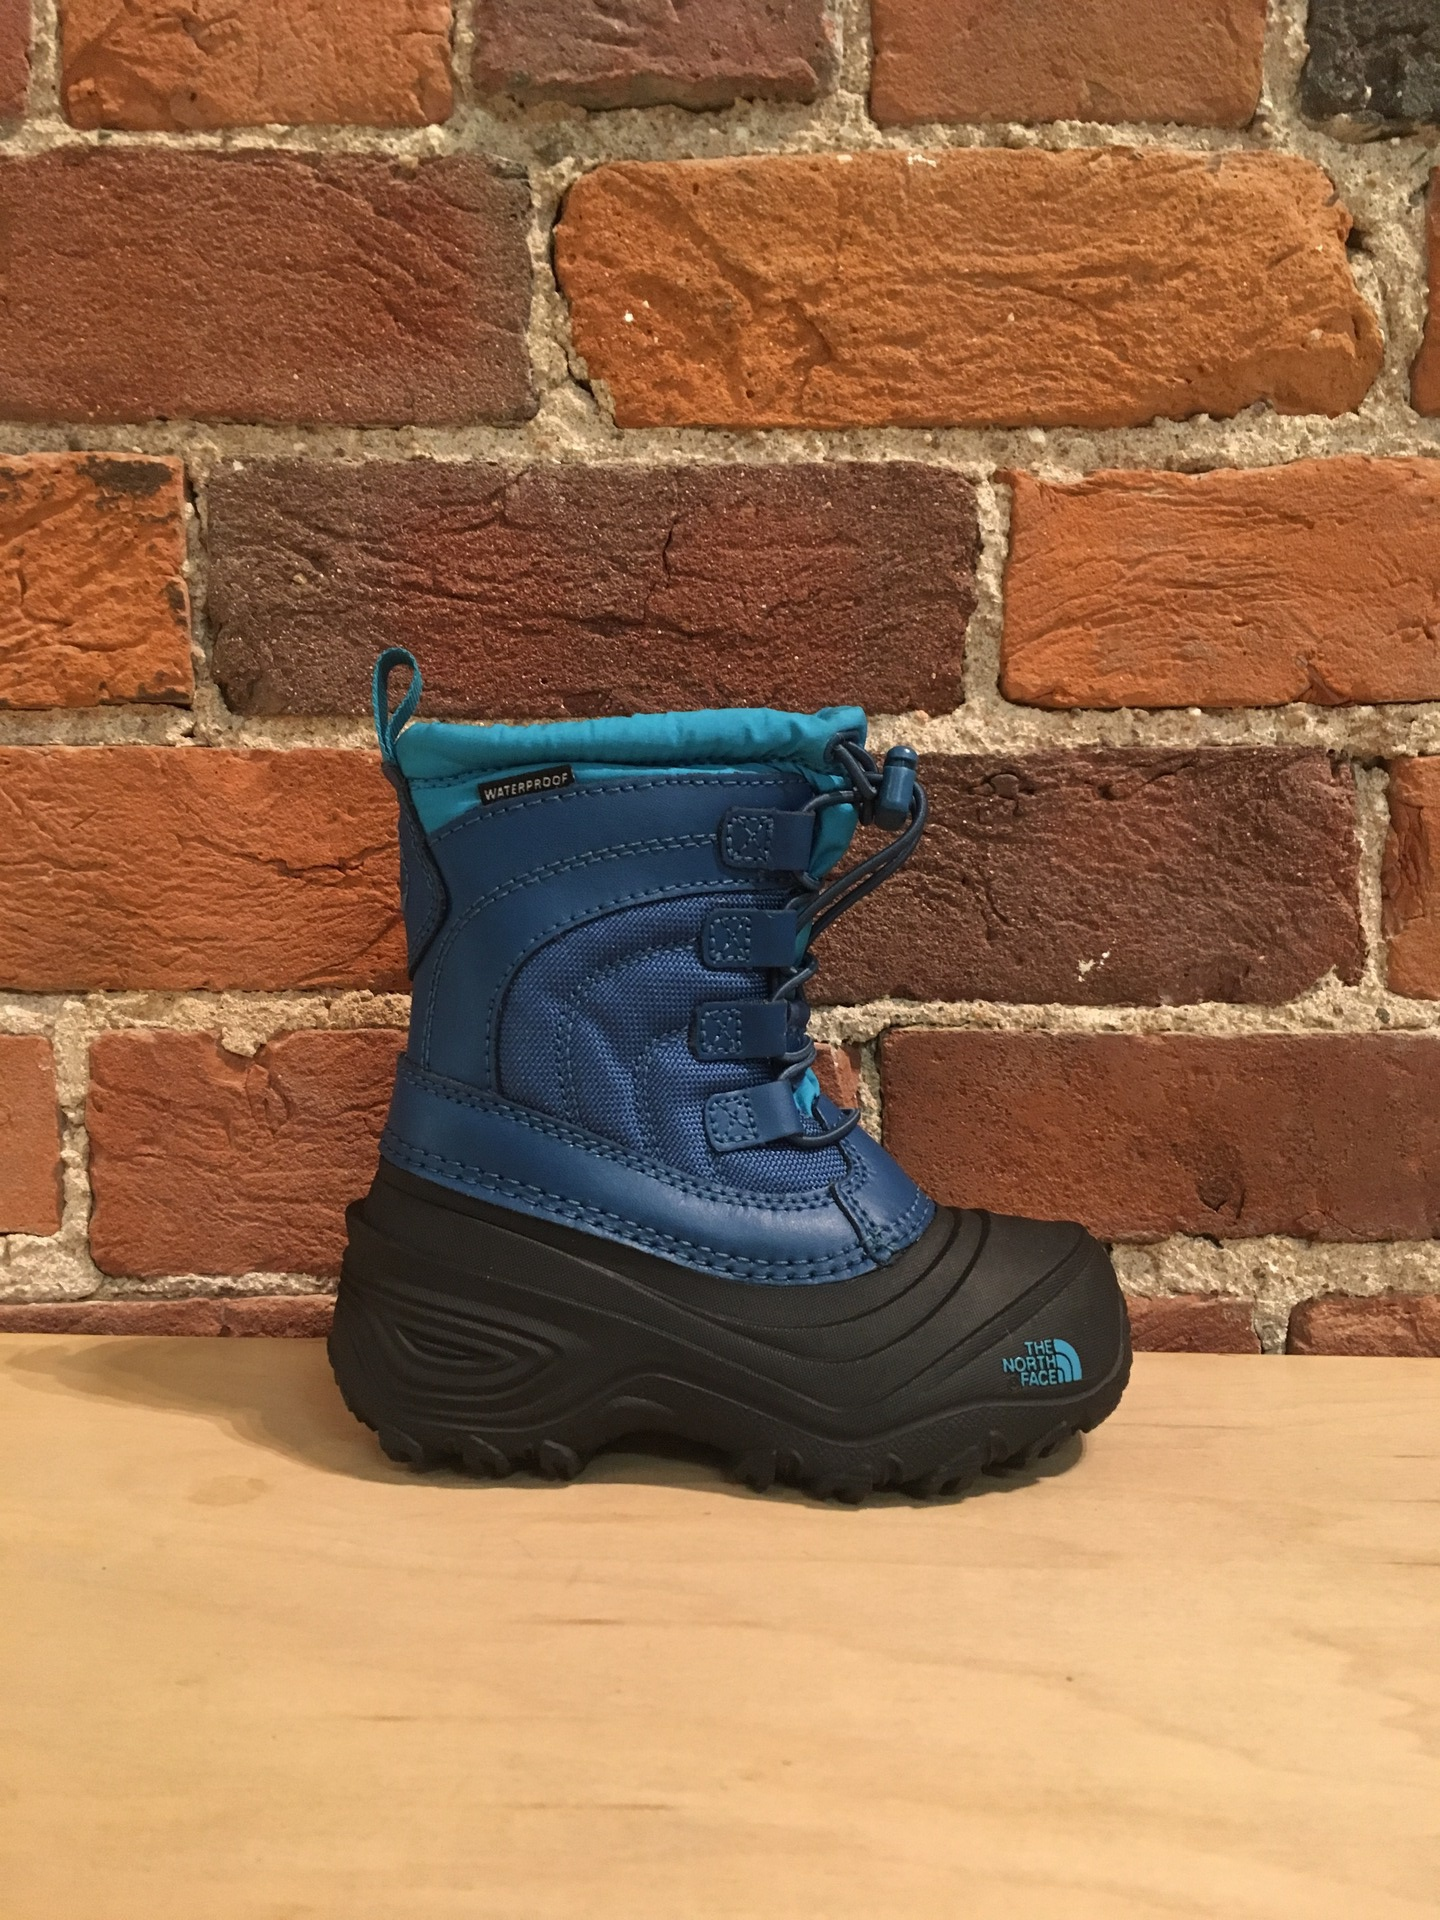 THE NORTH FACE - YOUTH ALPENGLOW IV IN EGYPTIAN BLUE/BLIZZARD BLUE